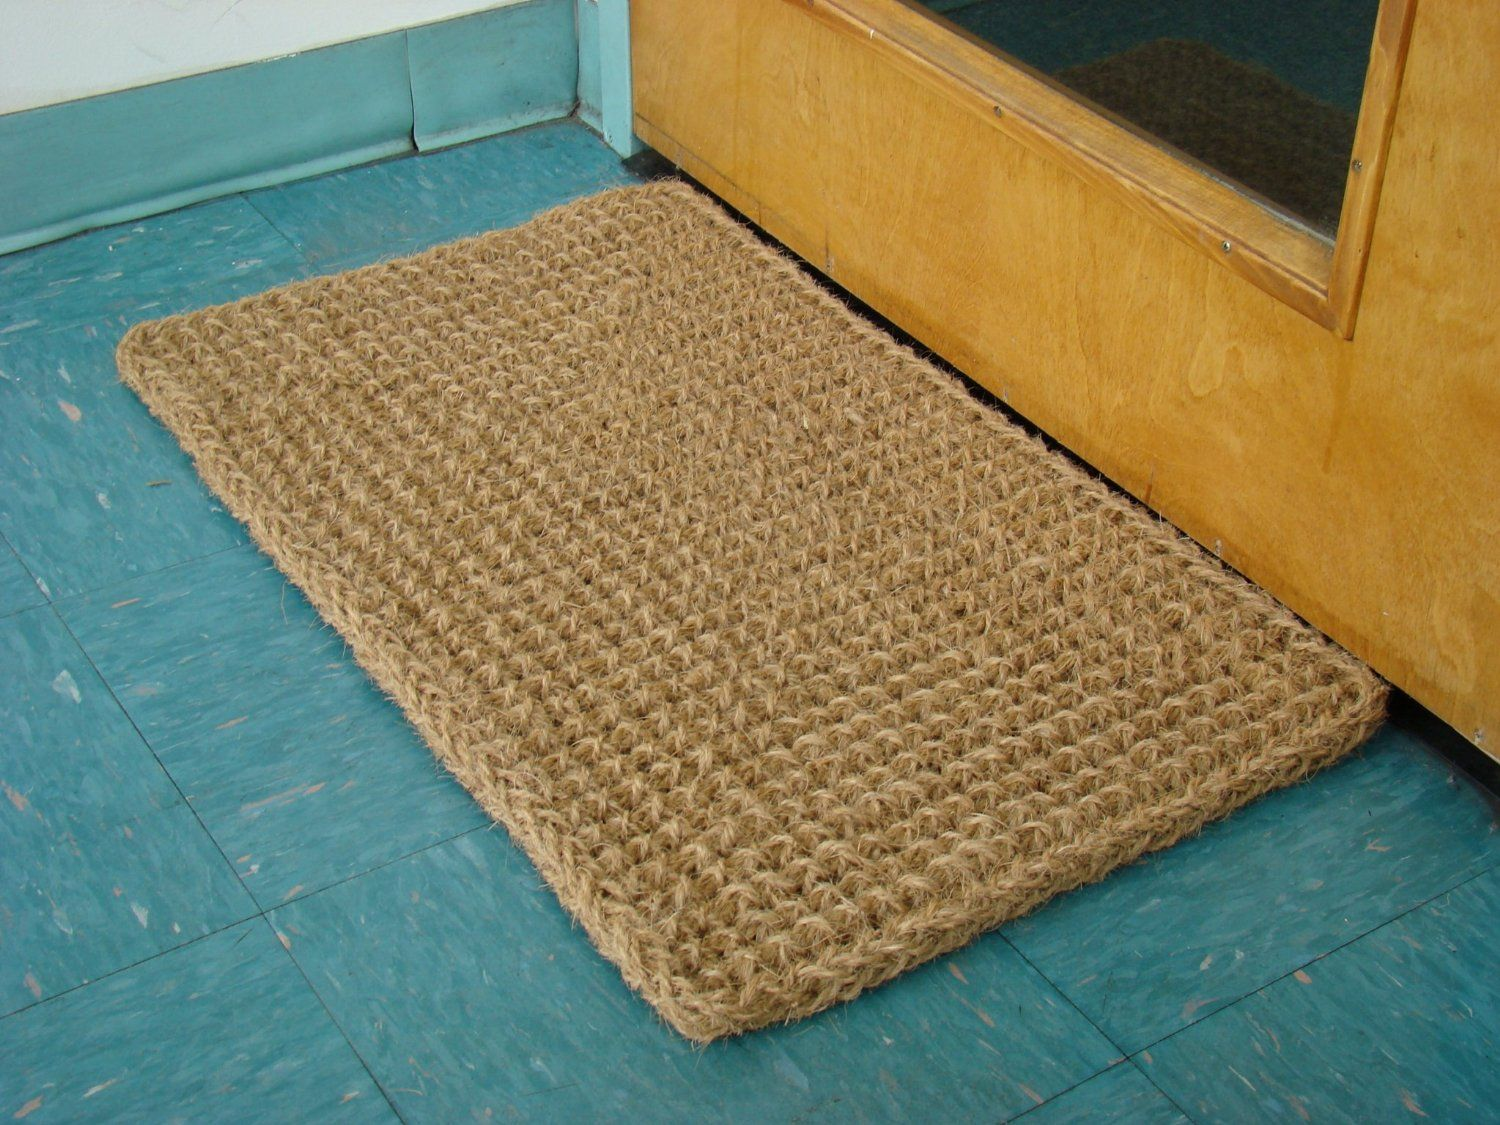 Amazon.com : Kempf Rectangle Dragon Coco Coir Doormat, 18 by 30 by ...